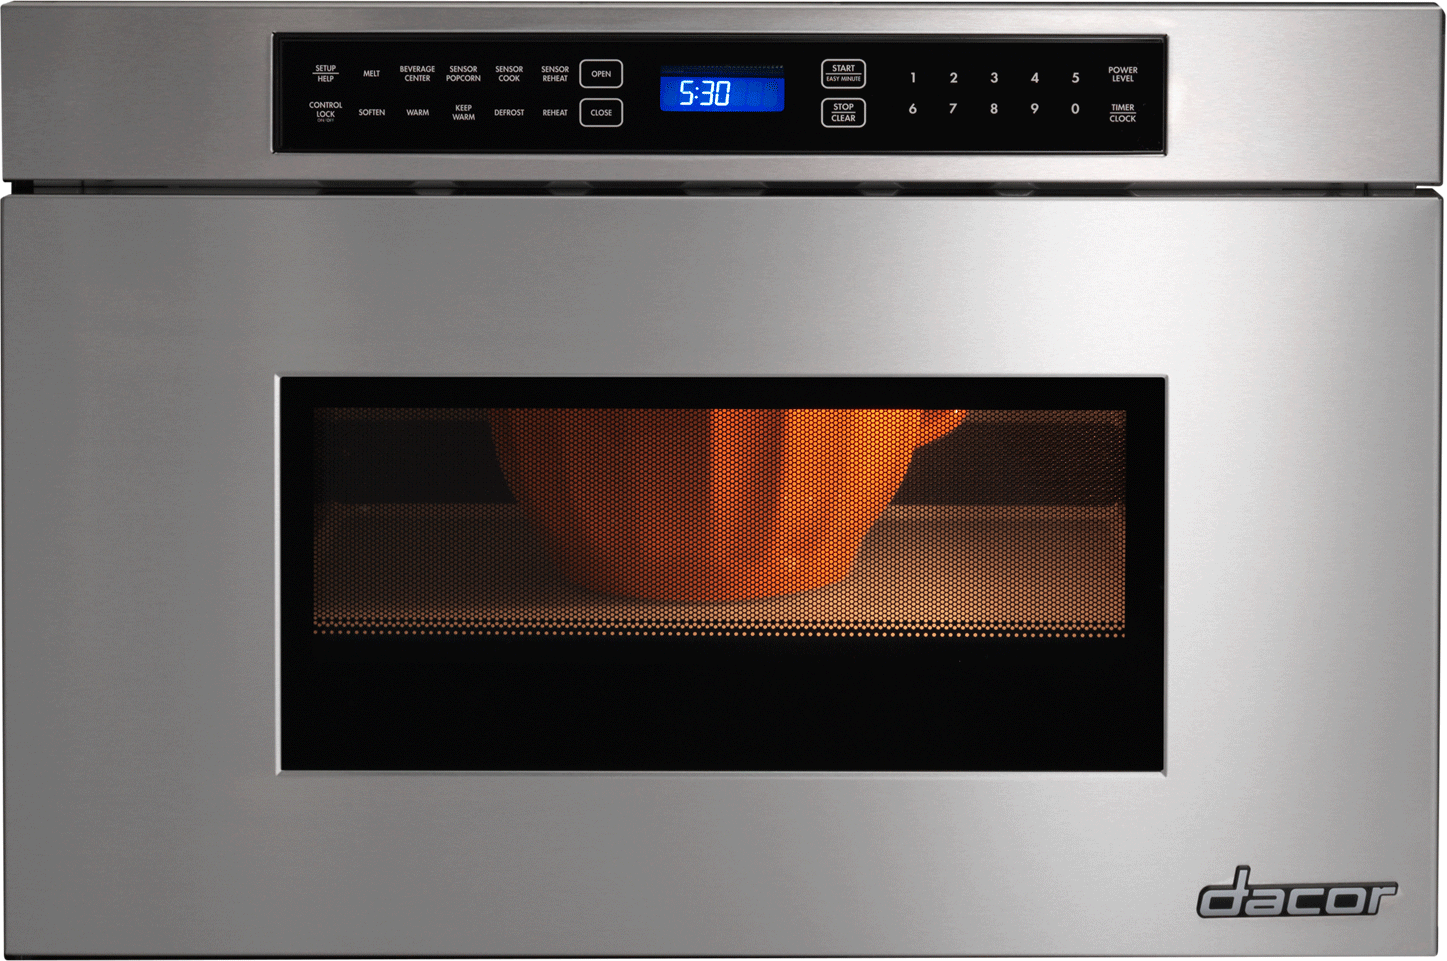 kenmore oven luxury of built microwave elite convection thermador drawer awesome in fresh